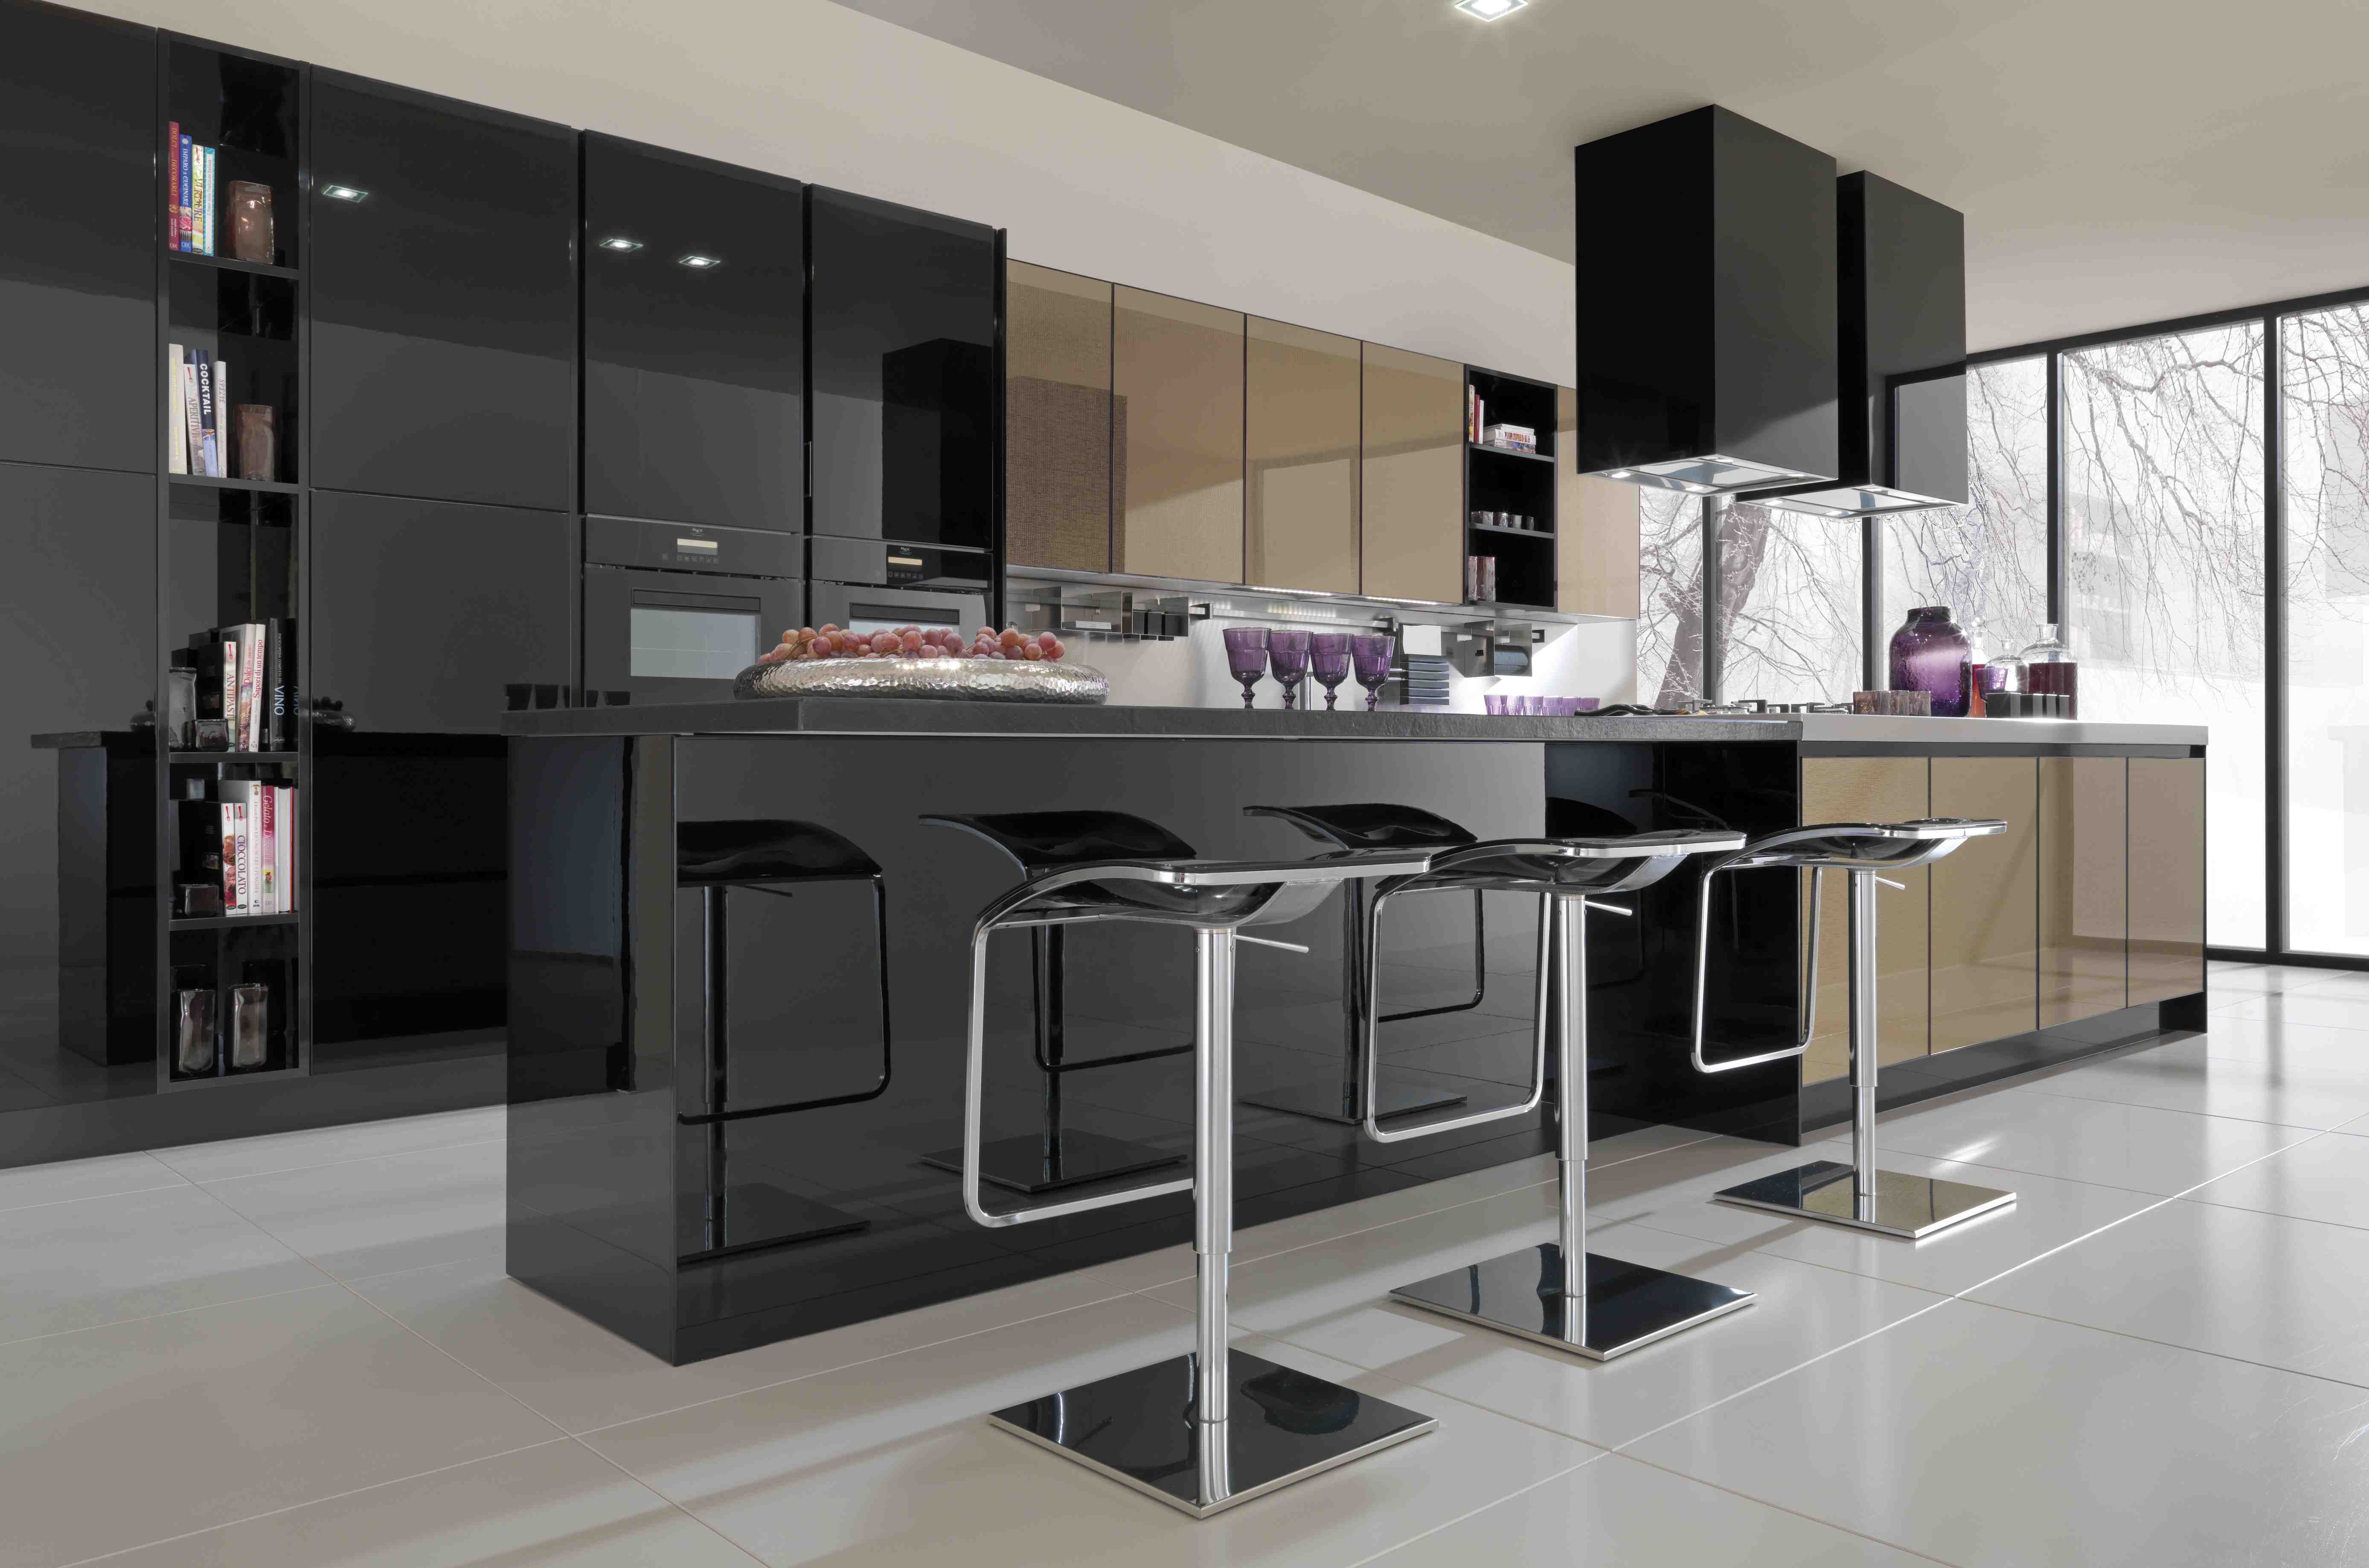 Home spaces intelligent solutions modular kitchens in for German modular kitchen designs